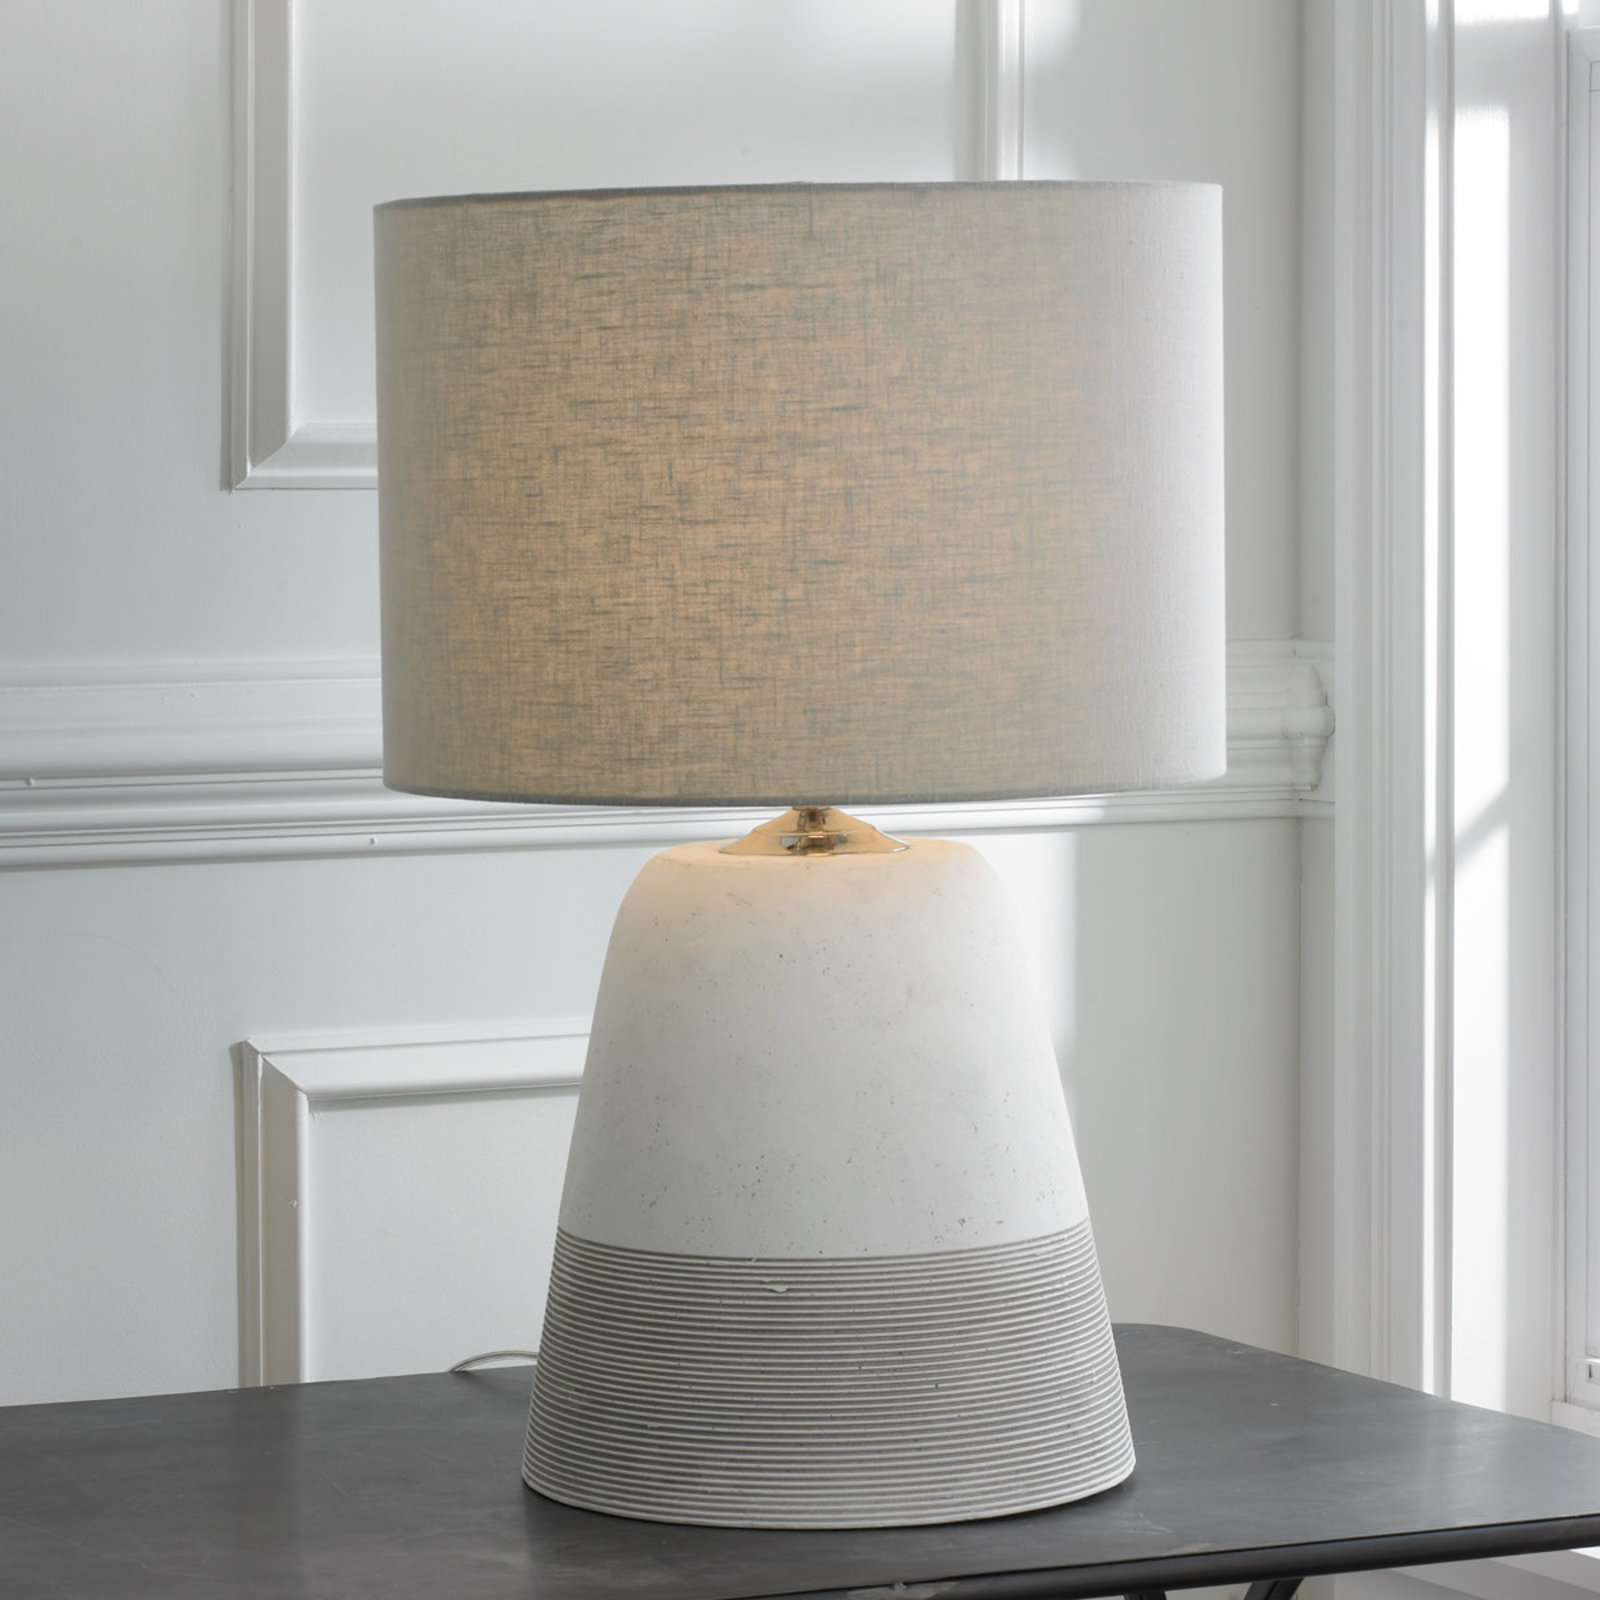 grooved concrete table lamp small shades light nautical accent lamps gray marble tulip side home decor stuff antique white square coffee homemade wood egg chair bunnings bedroom